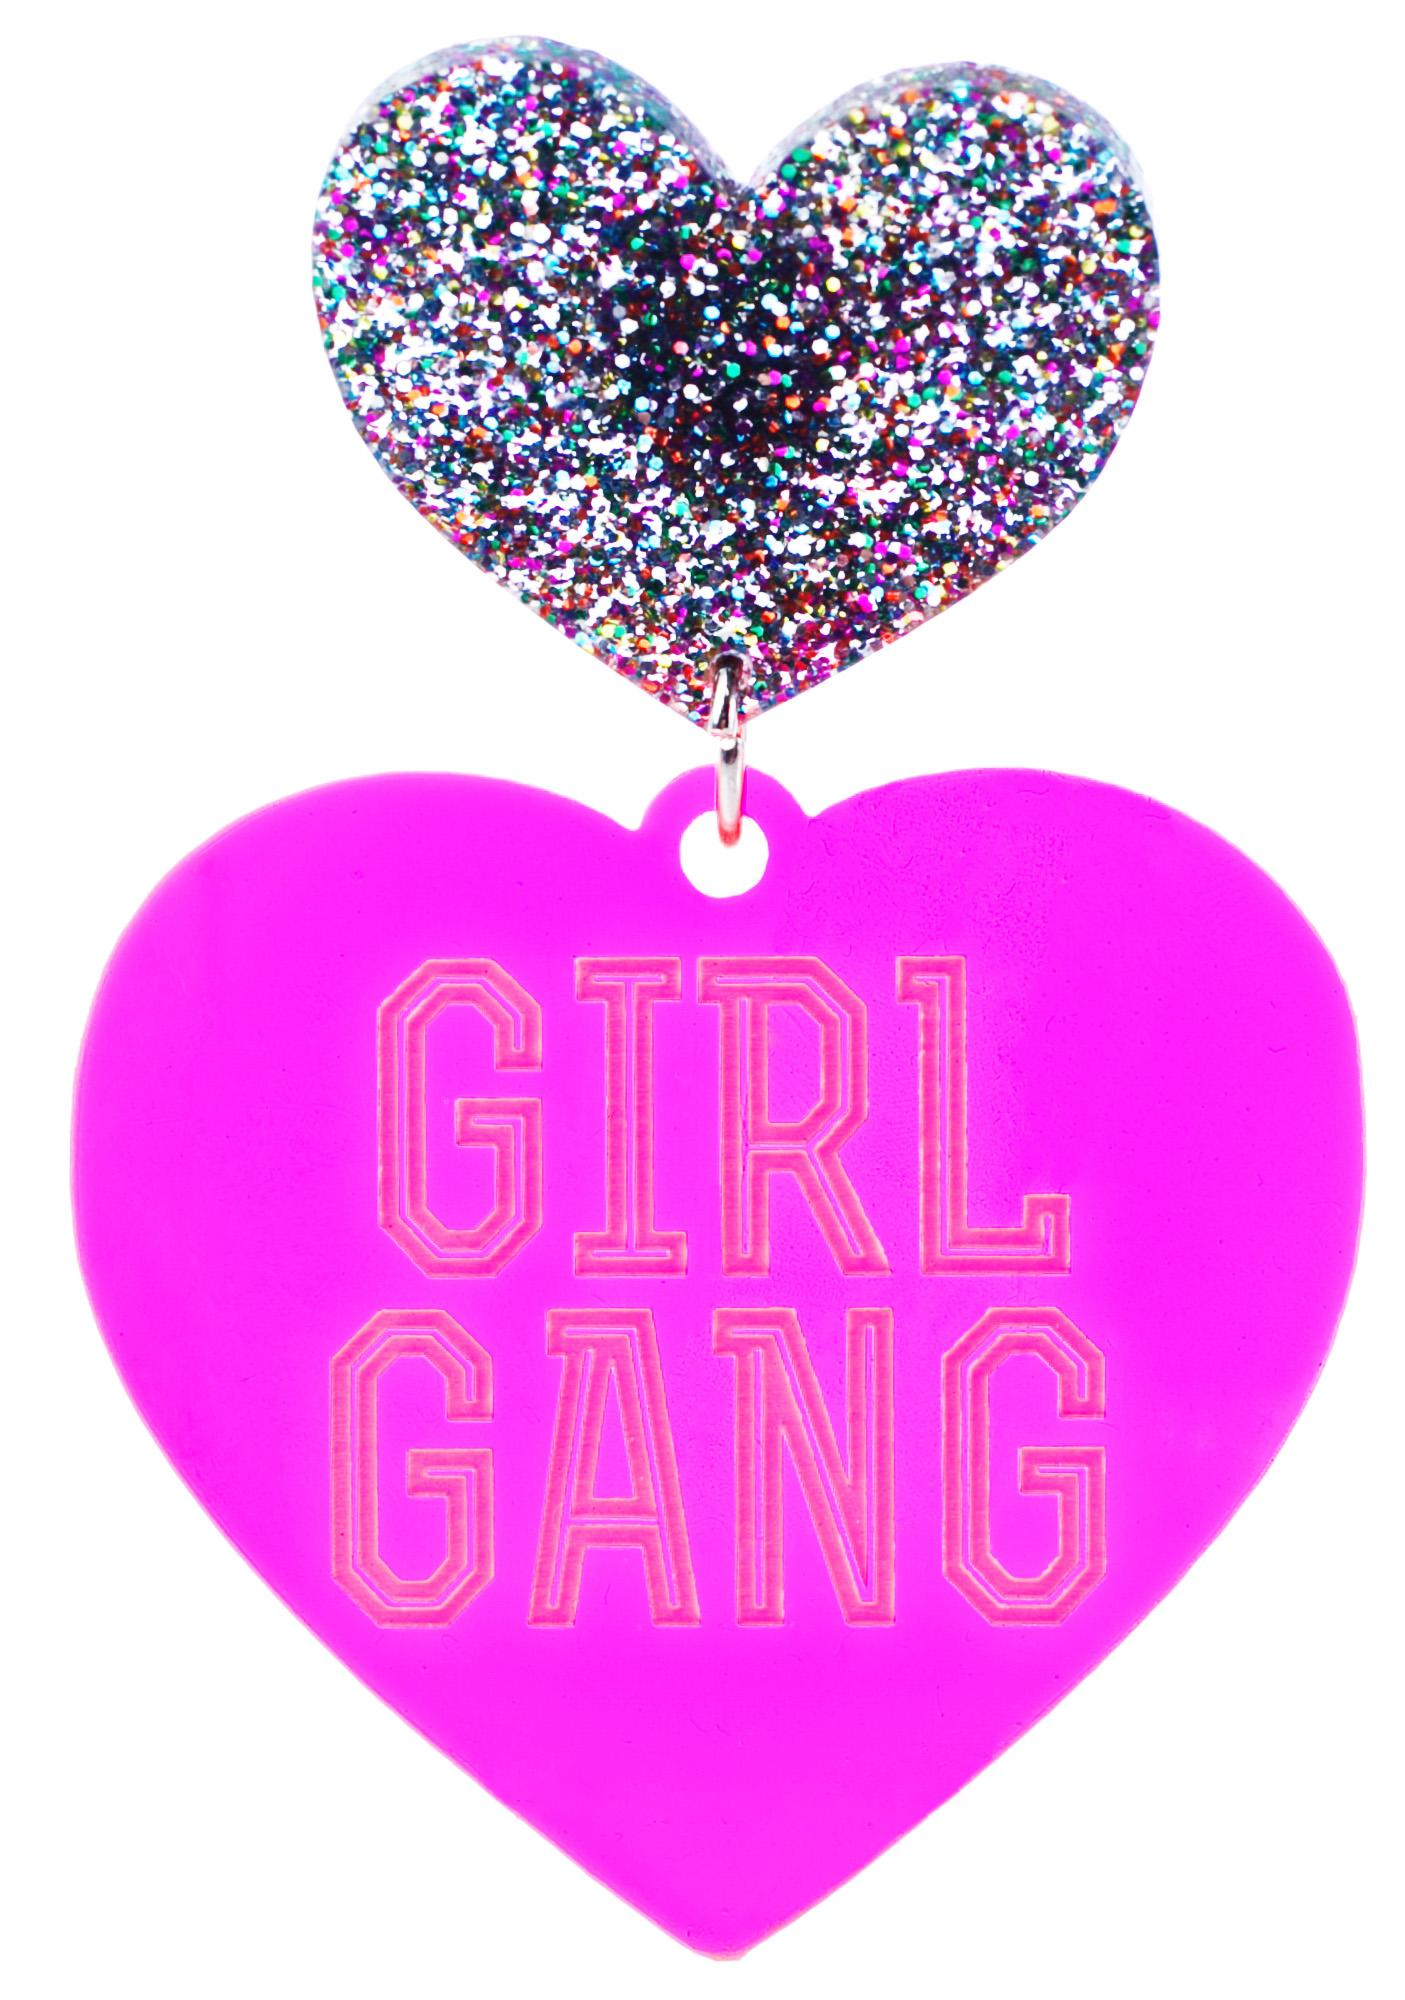 Haus of Dizzy Hottie Girl Gang Earrings